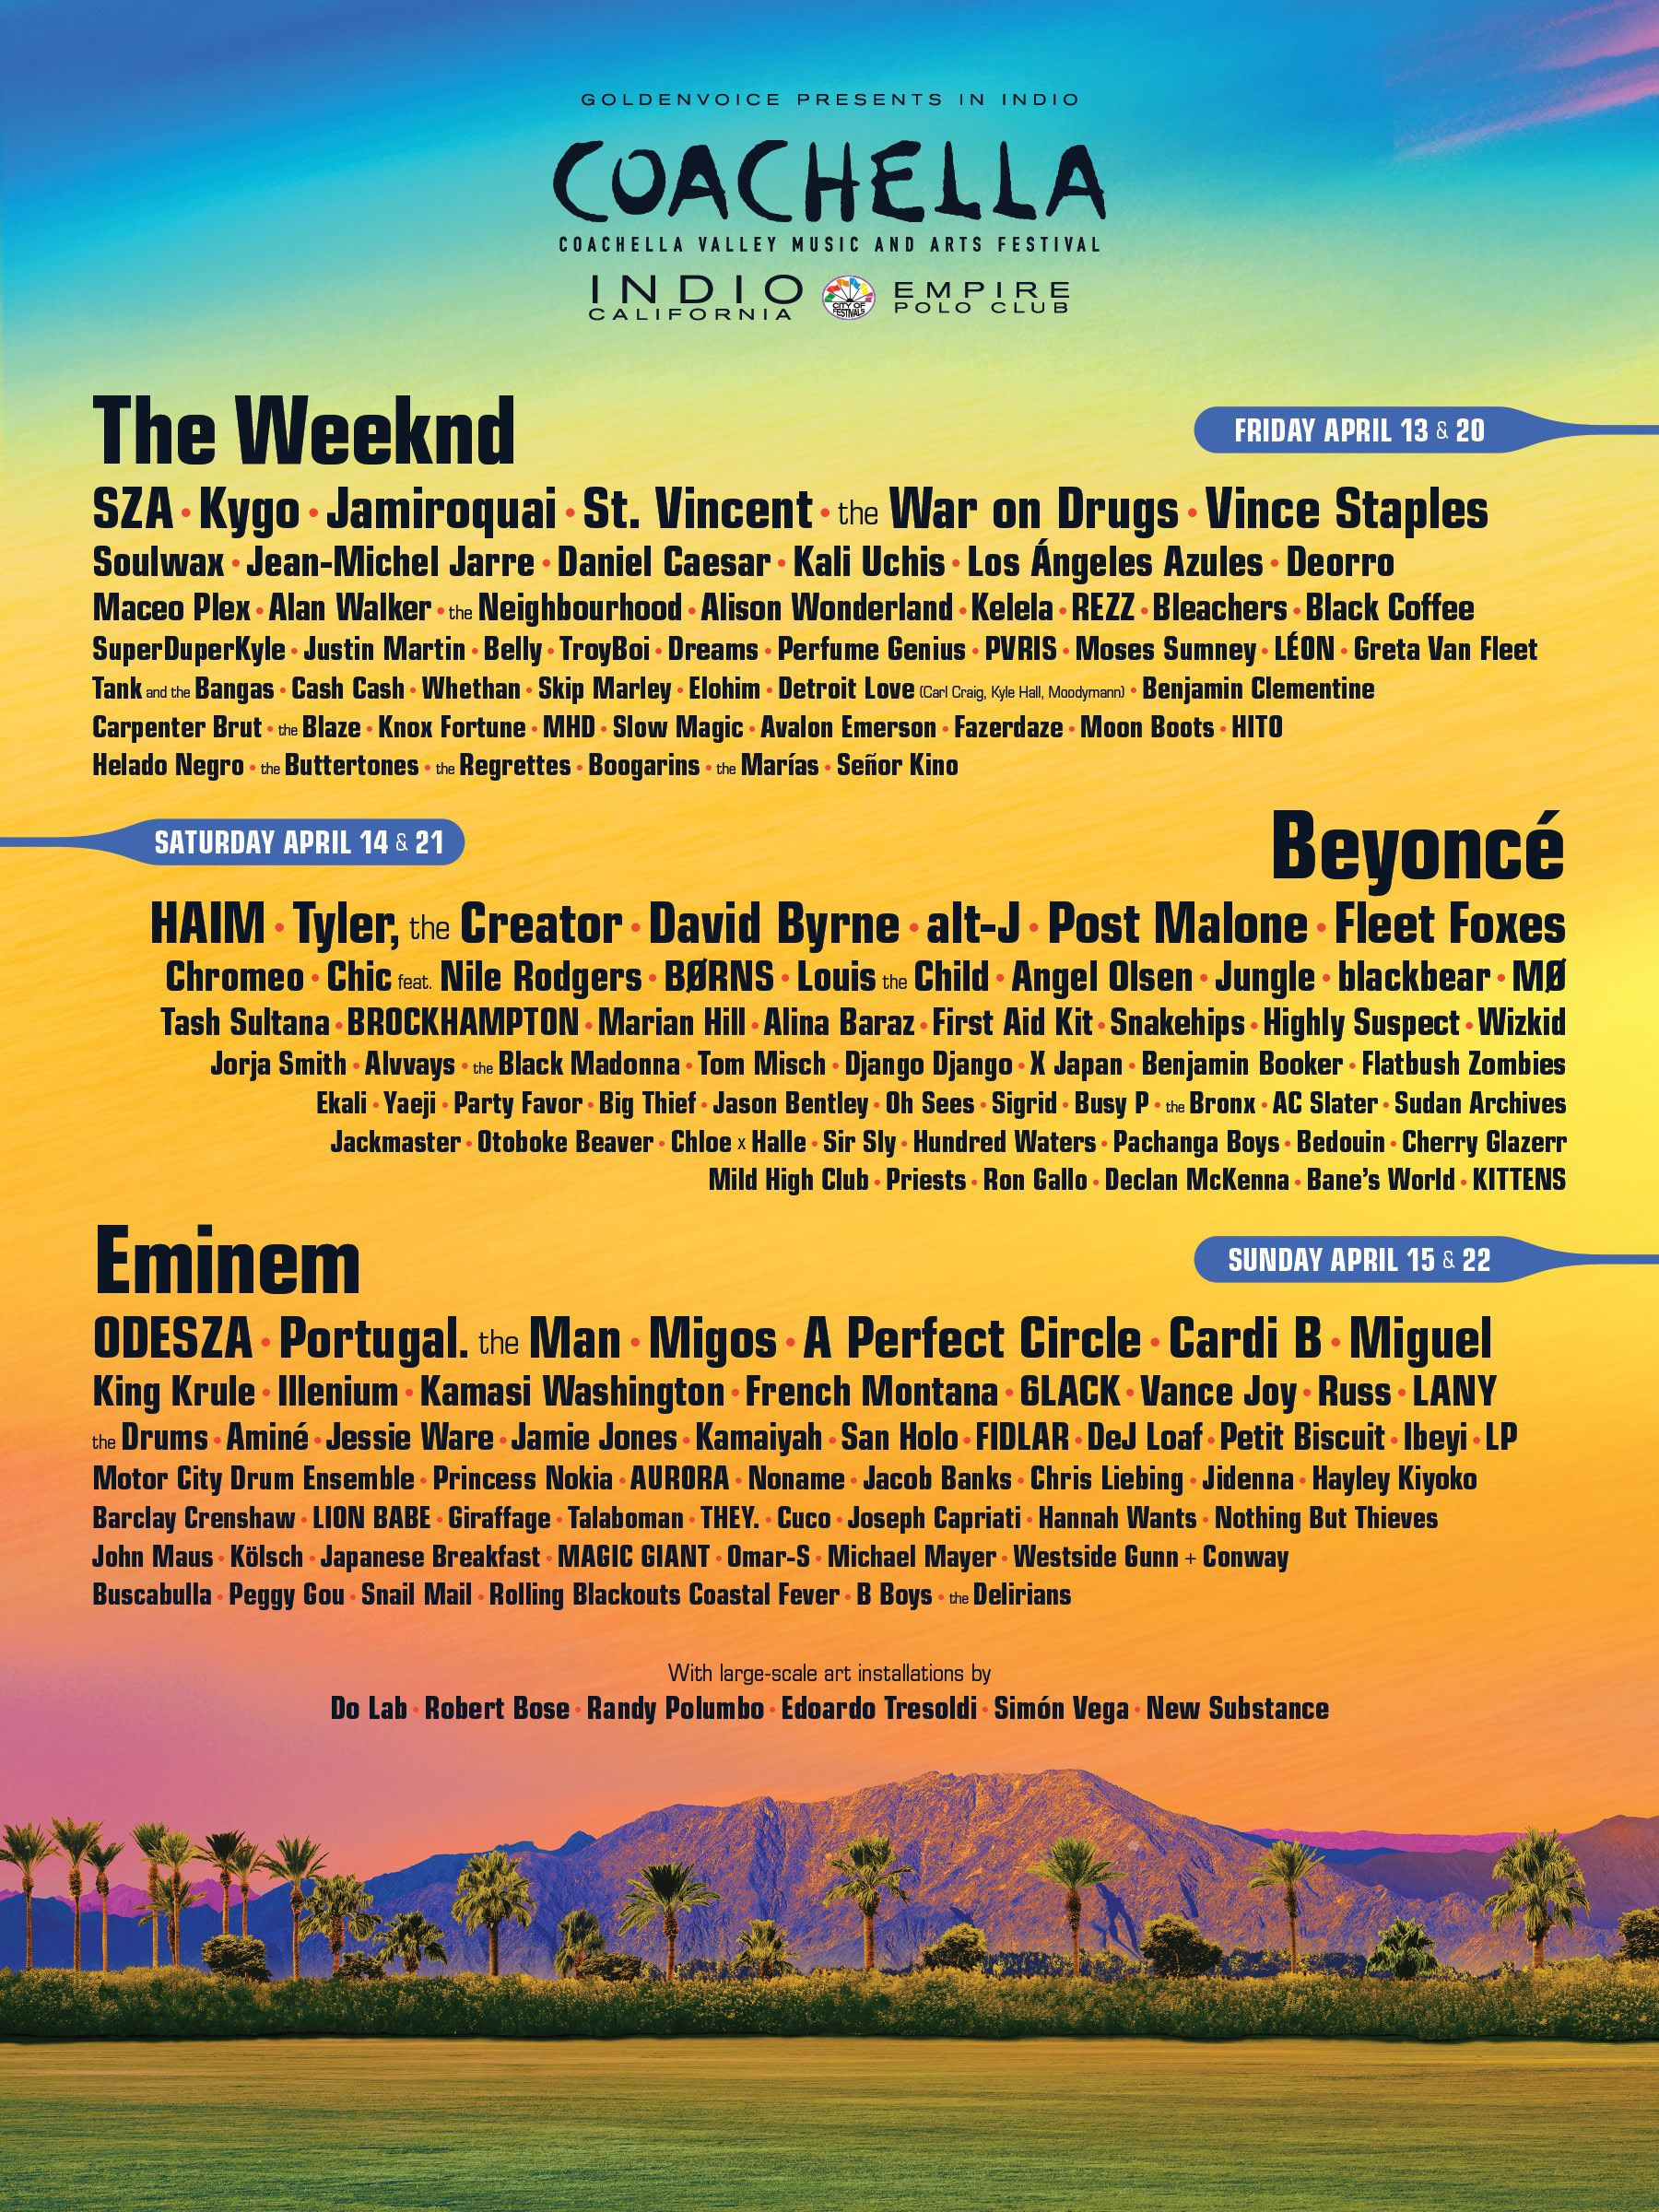 Line Up Coachella 2018. Foto: Coachella